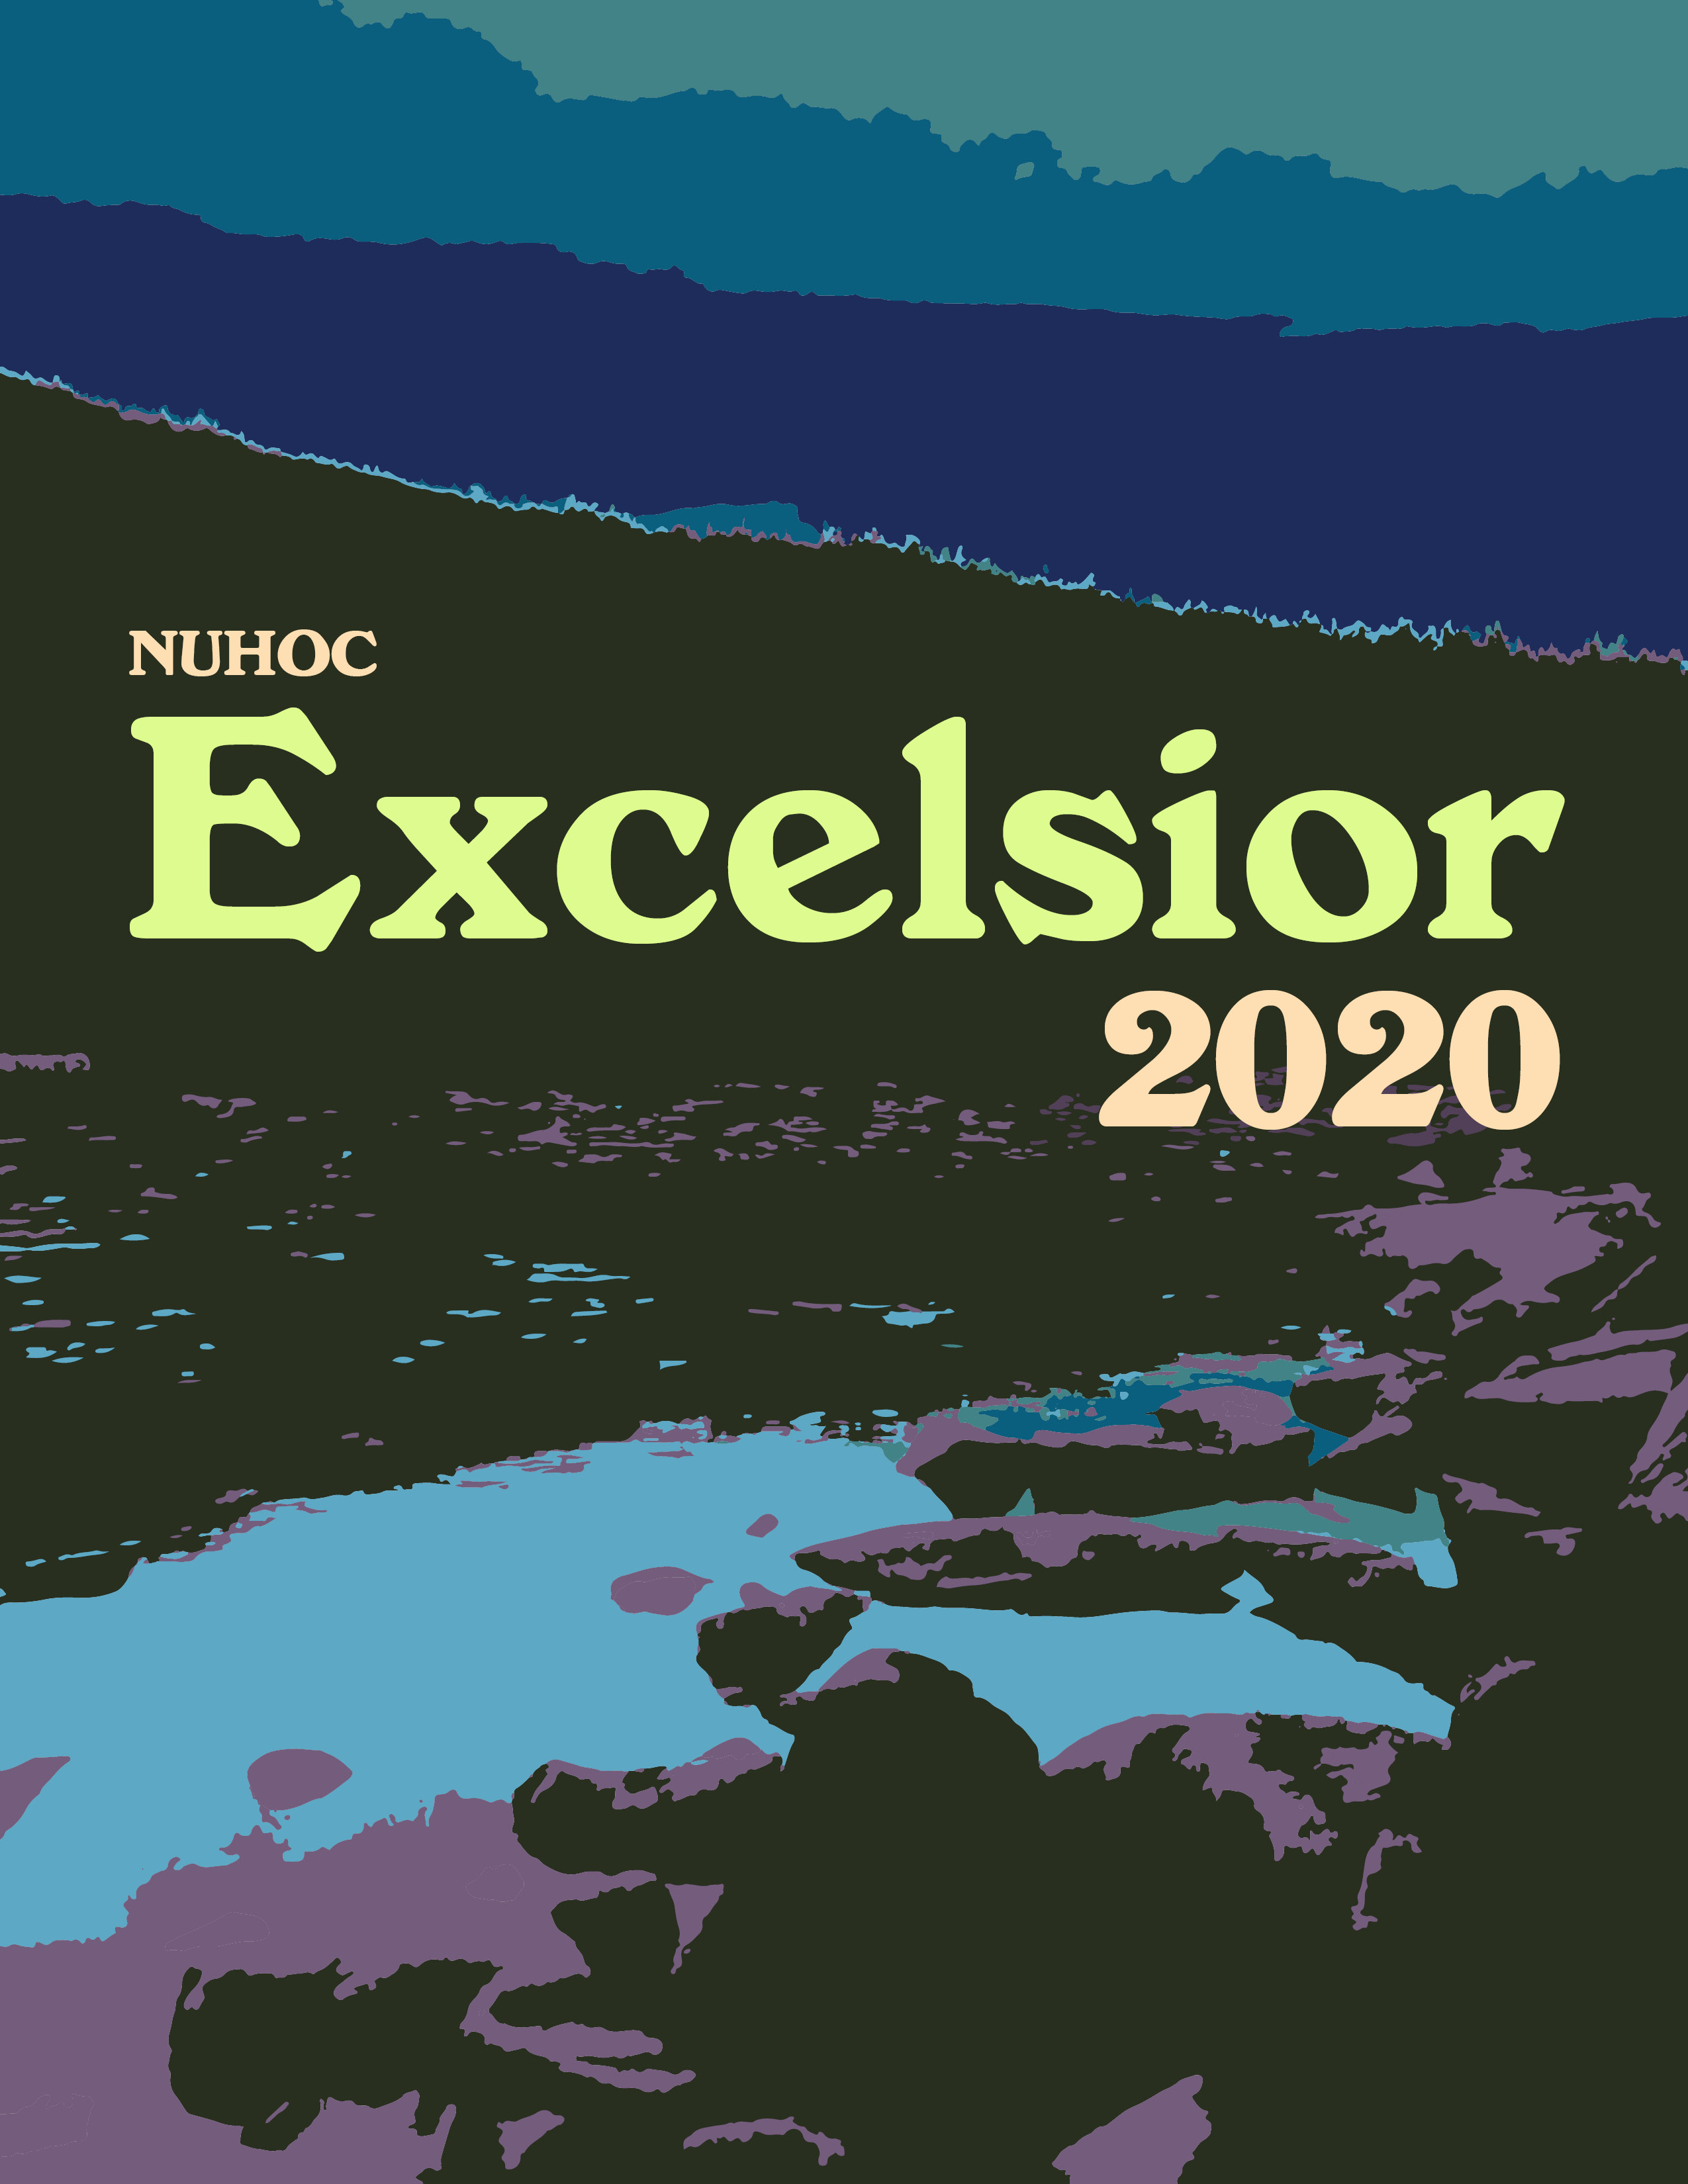 'NUHOC Excelsior 2020' is written on an illustrative background depicting a mountain and a stream.